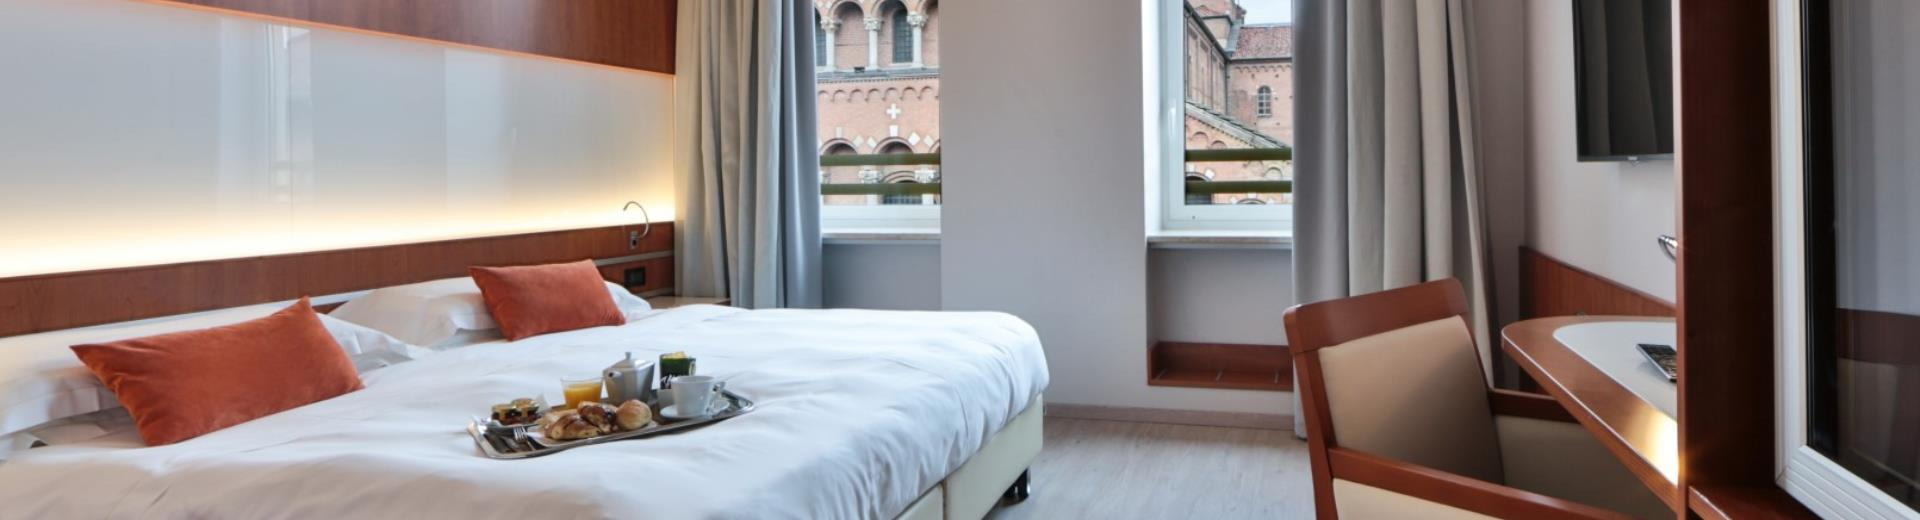 Double twin room-Hotel Astoria Milan